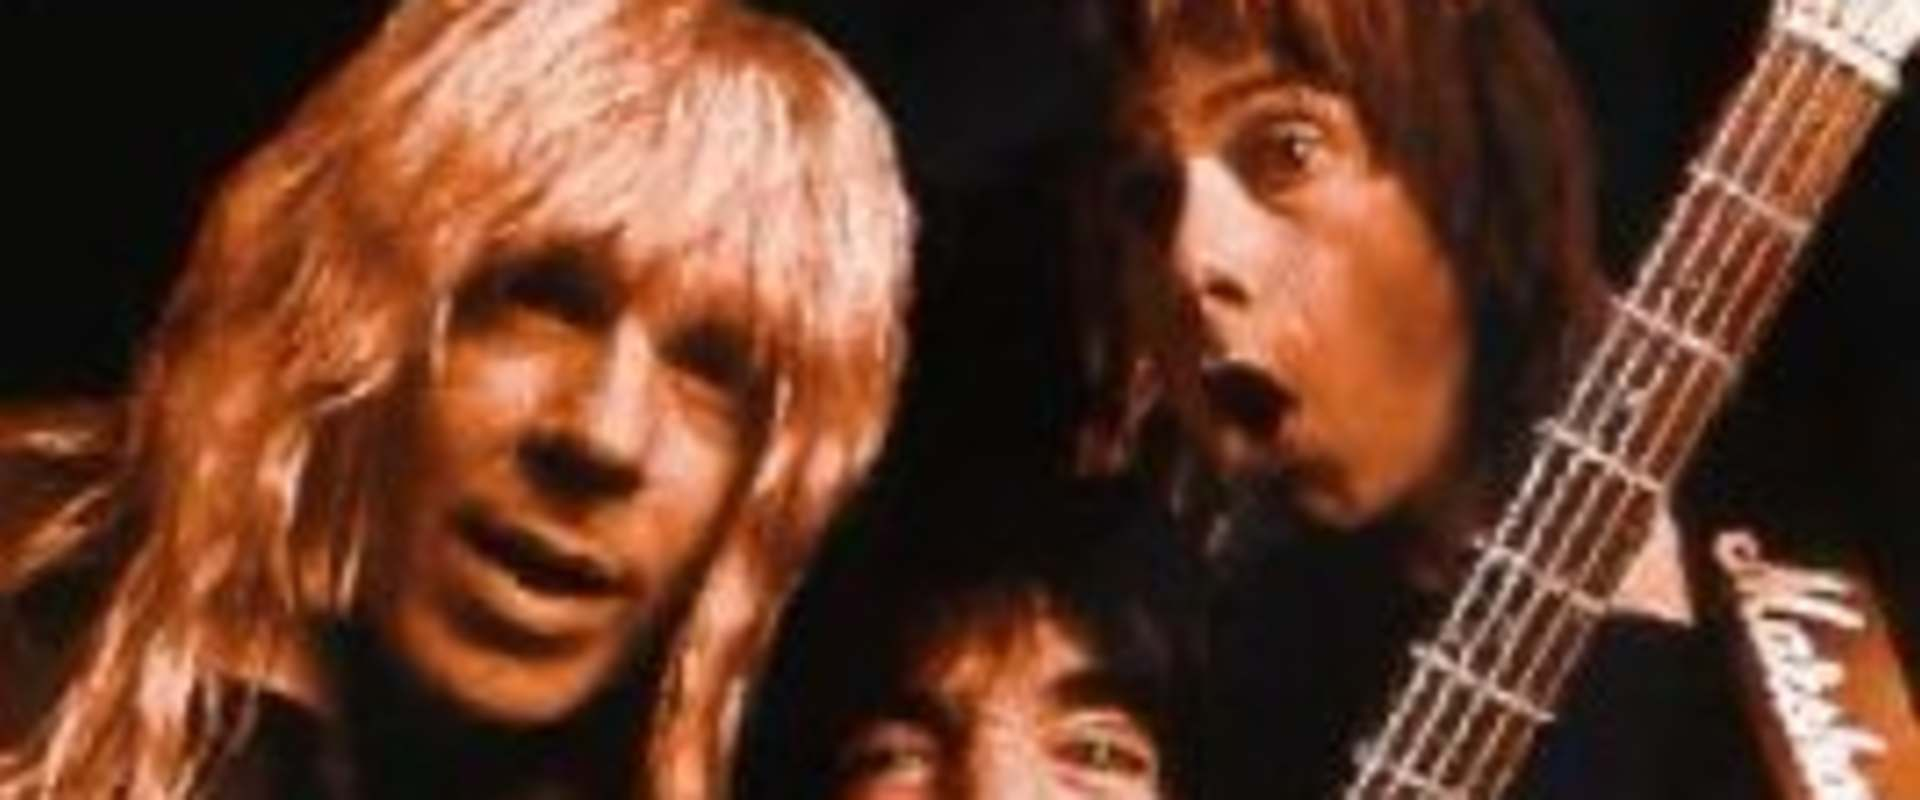 A Spinal Tap Reunion: The 25th Anniversary London Sell-Out background 1